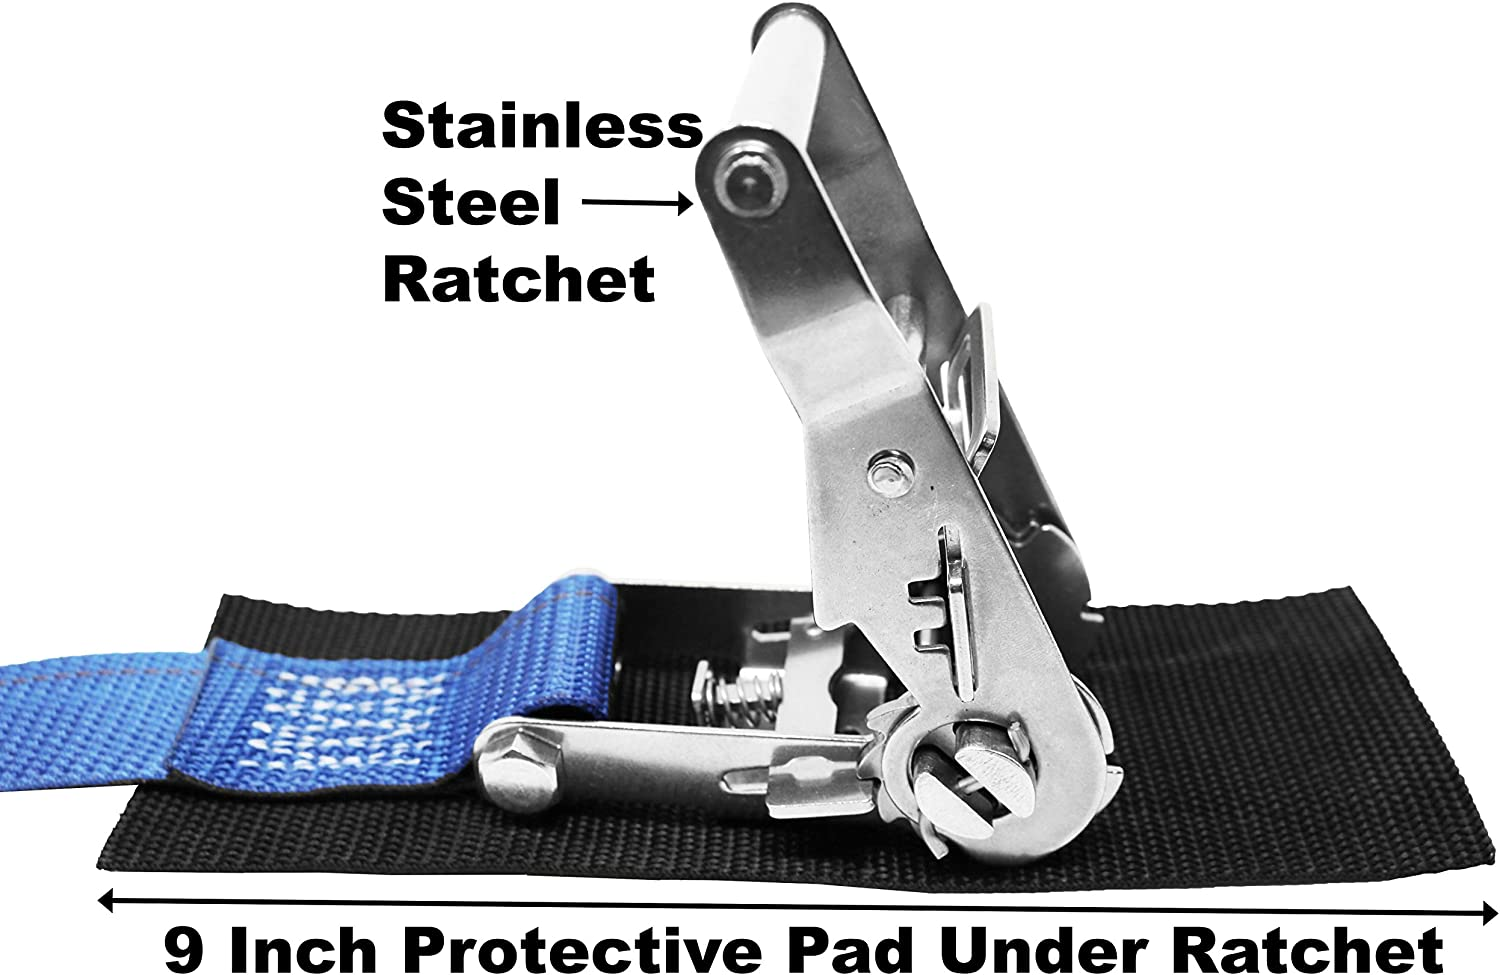 Polyester Tie-Down Webbing 1.5 Inch Ratchet Strap Stainless Steel Ratchet with Wide Handle Protective Pad Under Buckle Total Strap Length 10 Ft Vinyl Coated S Hook On Both Ends